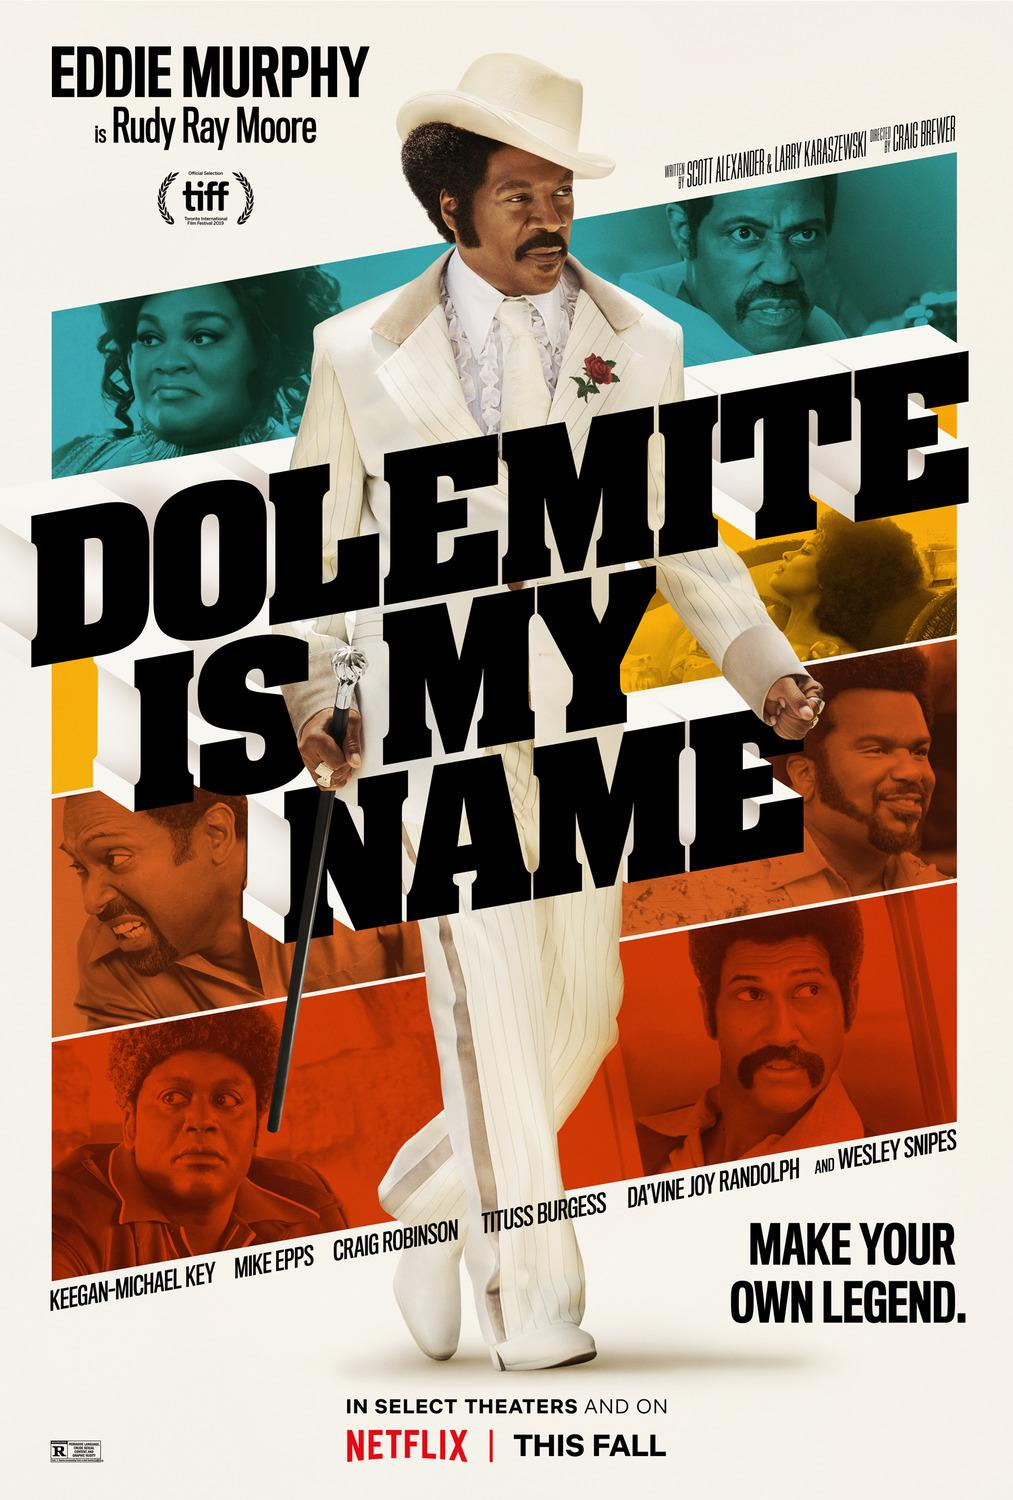 Dolemite 2019 Wallpapers - Wallpaper Cave